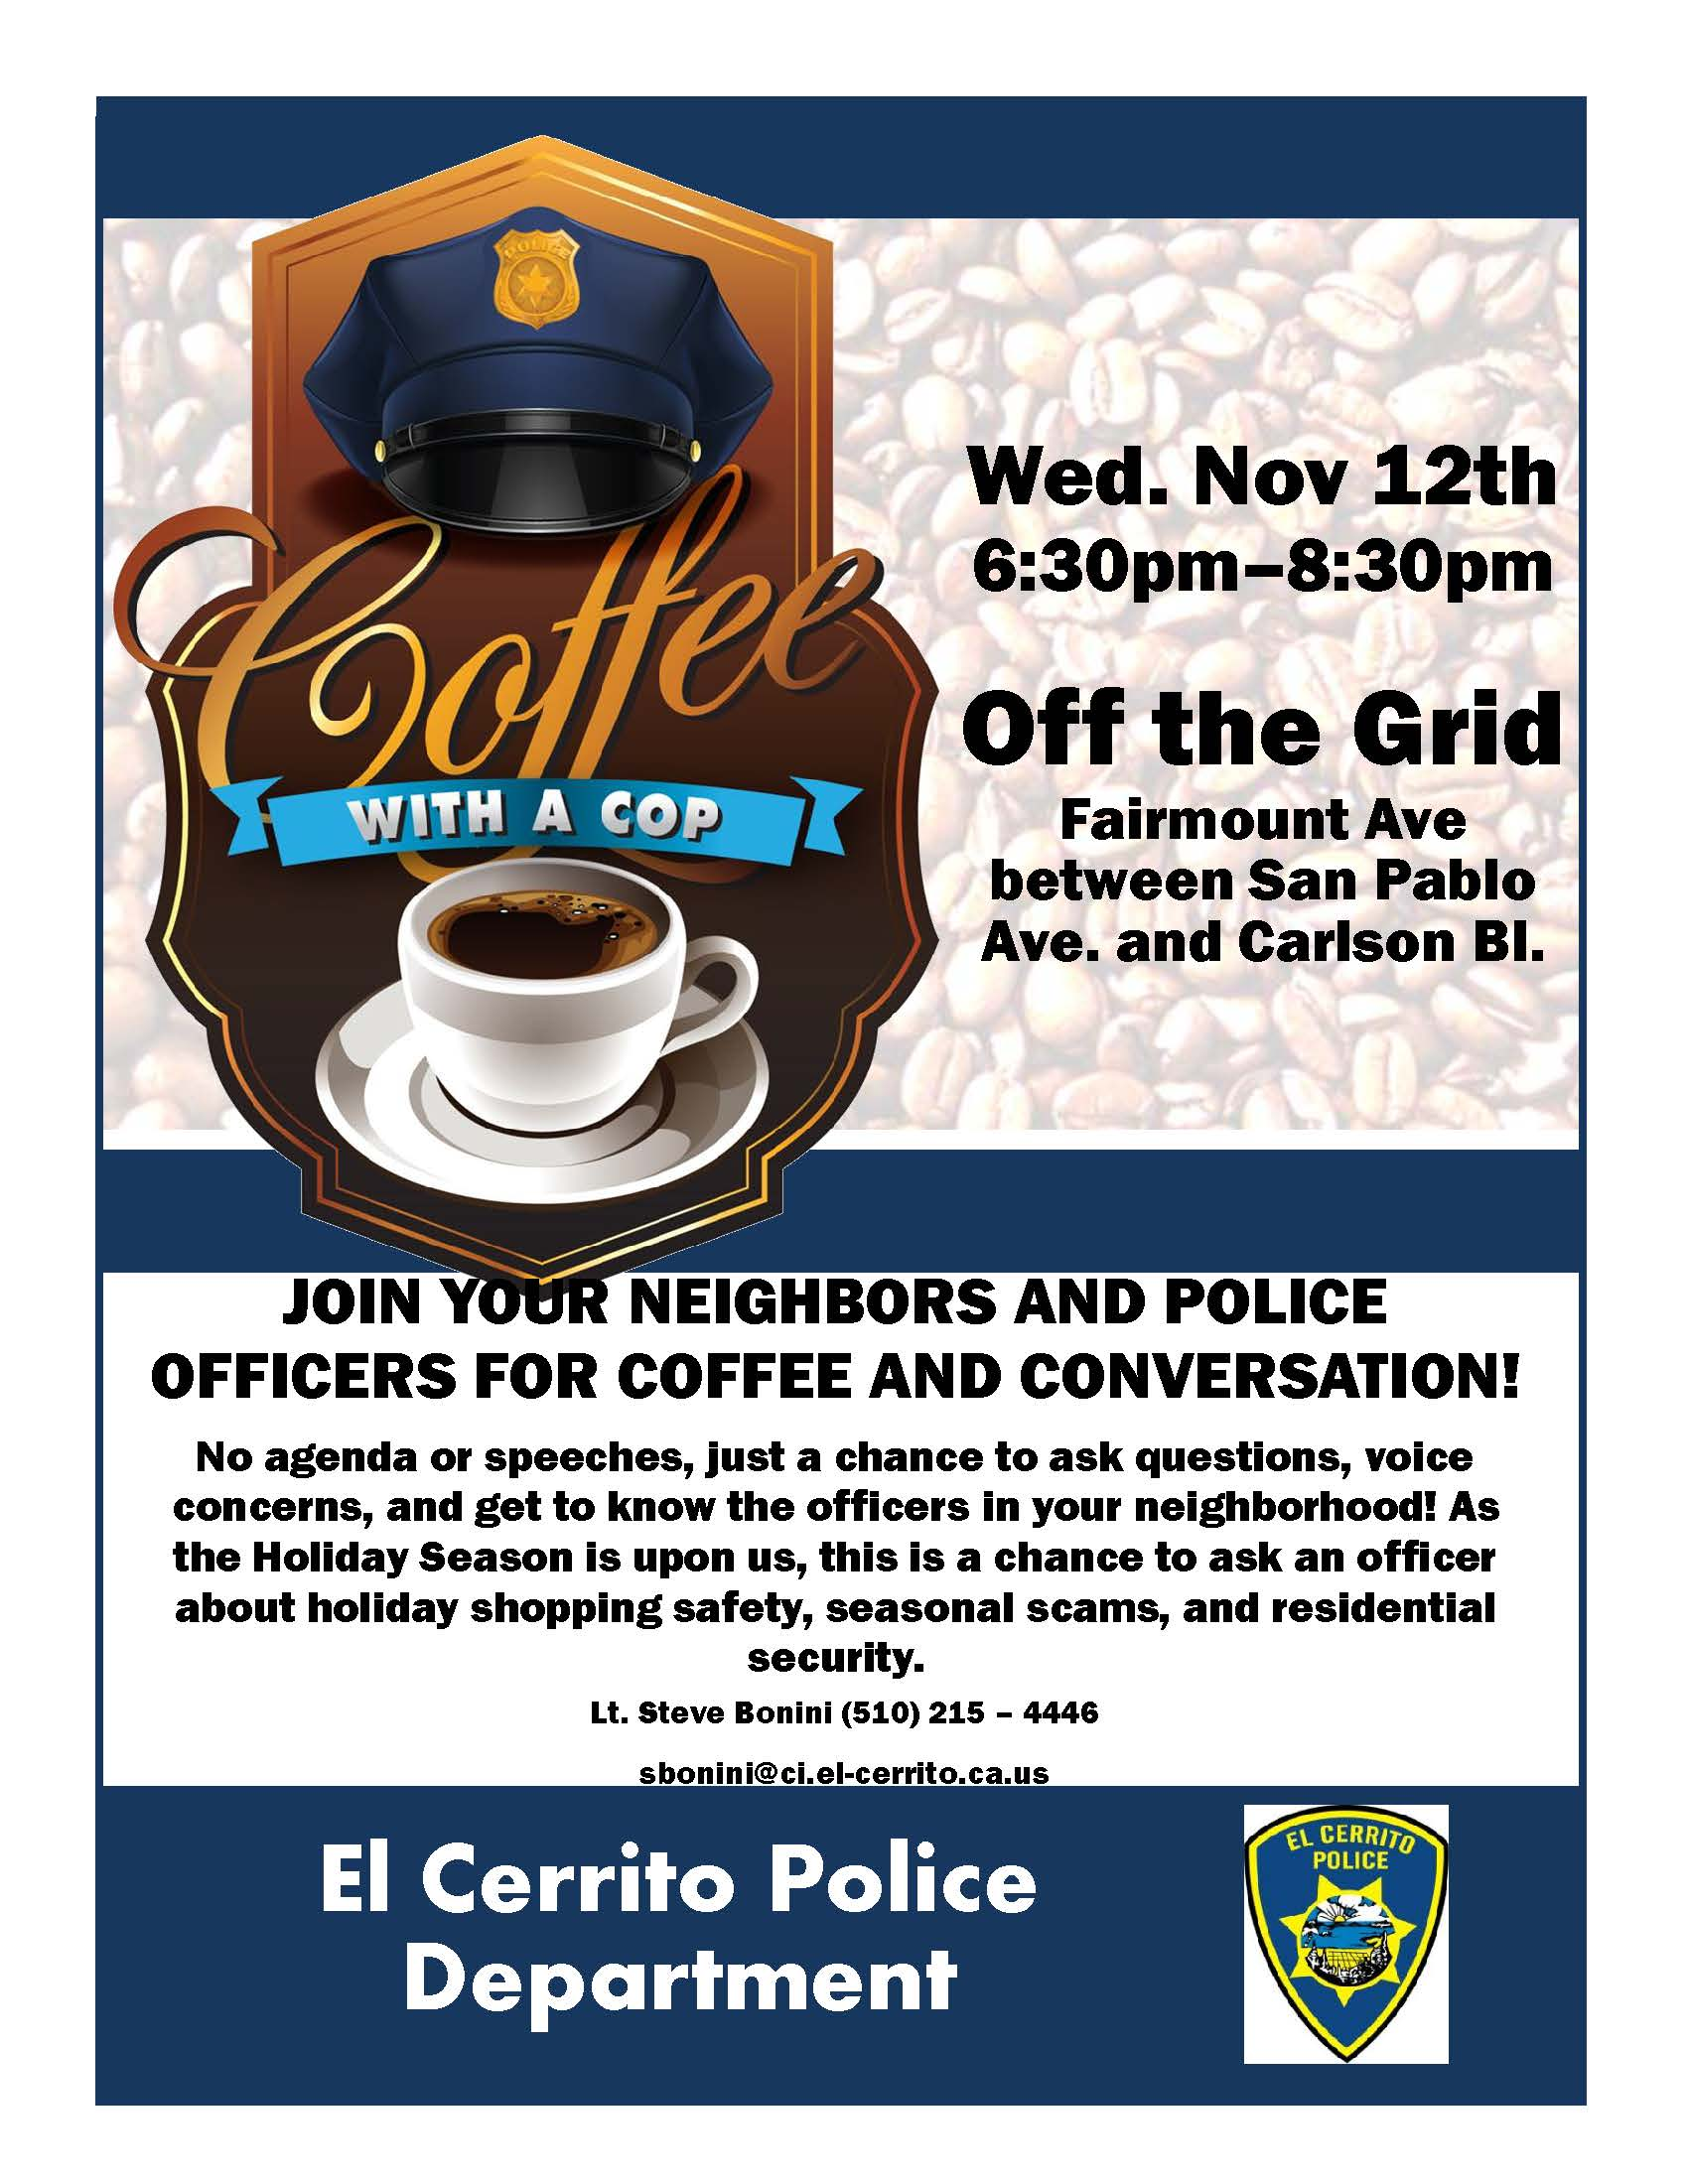 Coffee with Cops Off the Grid Nov 12th.jpg